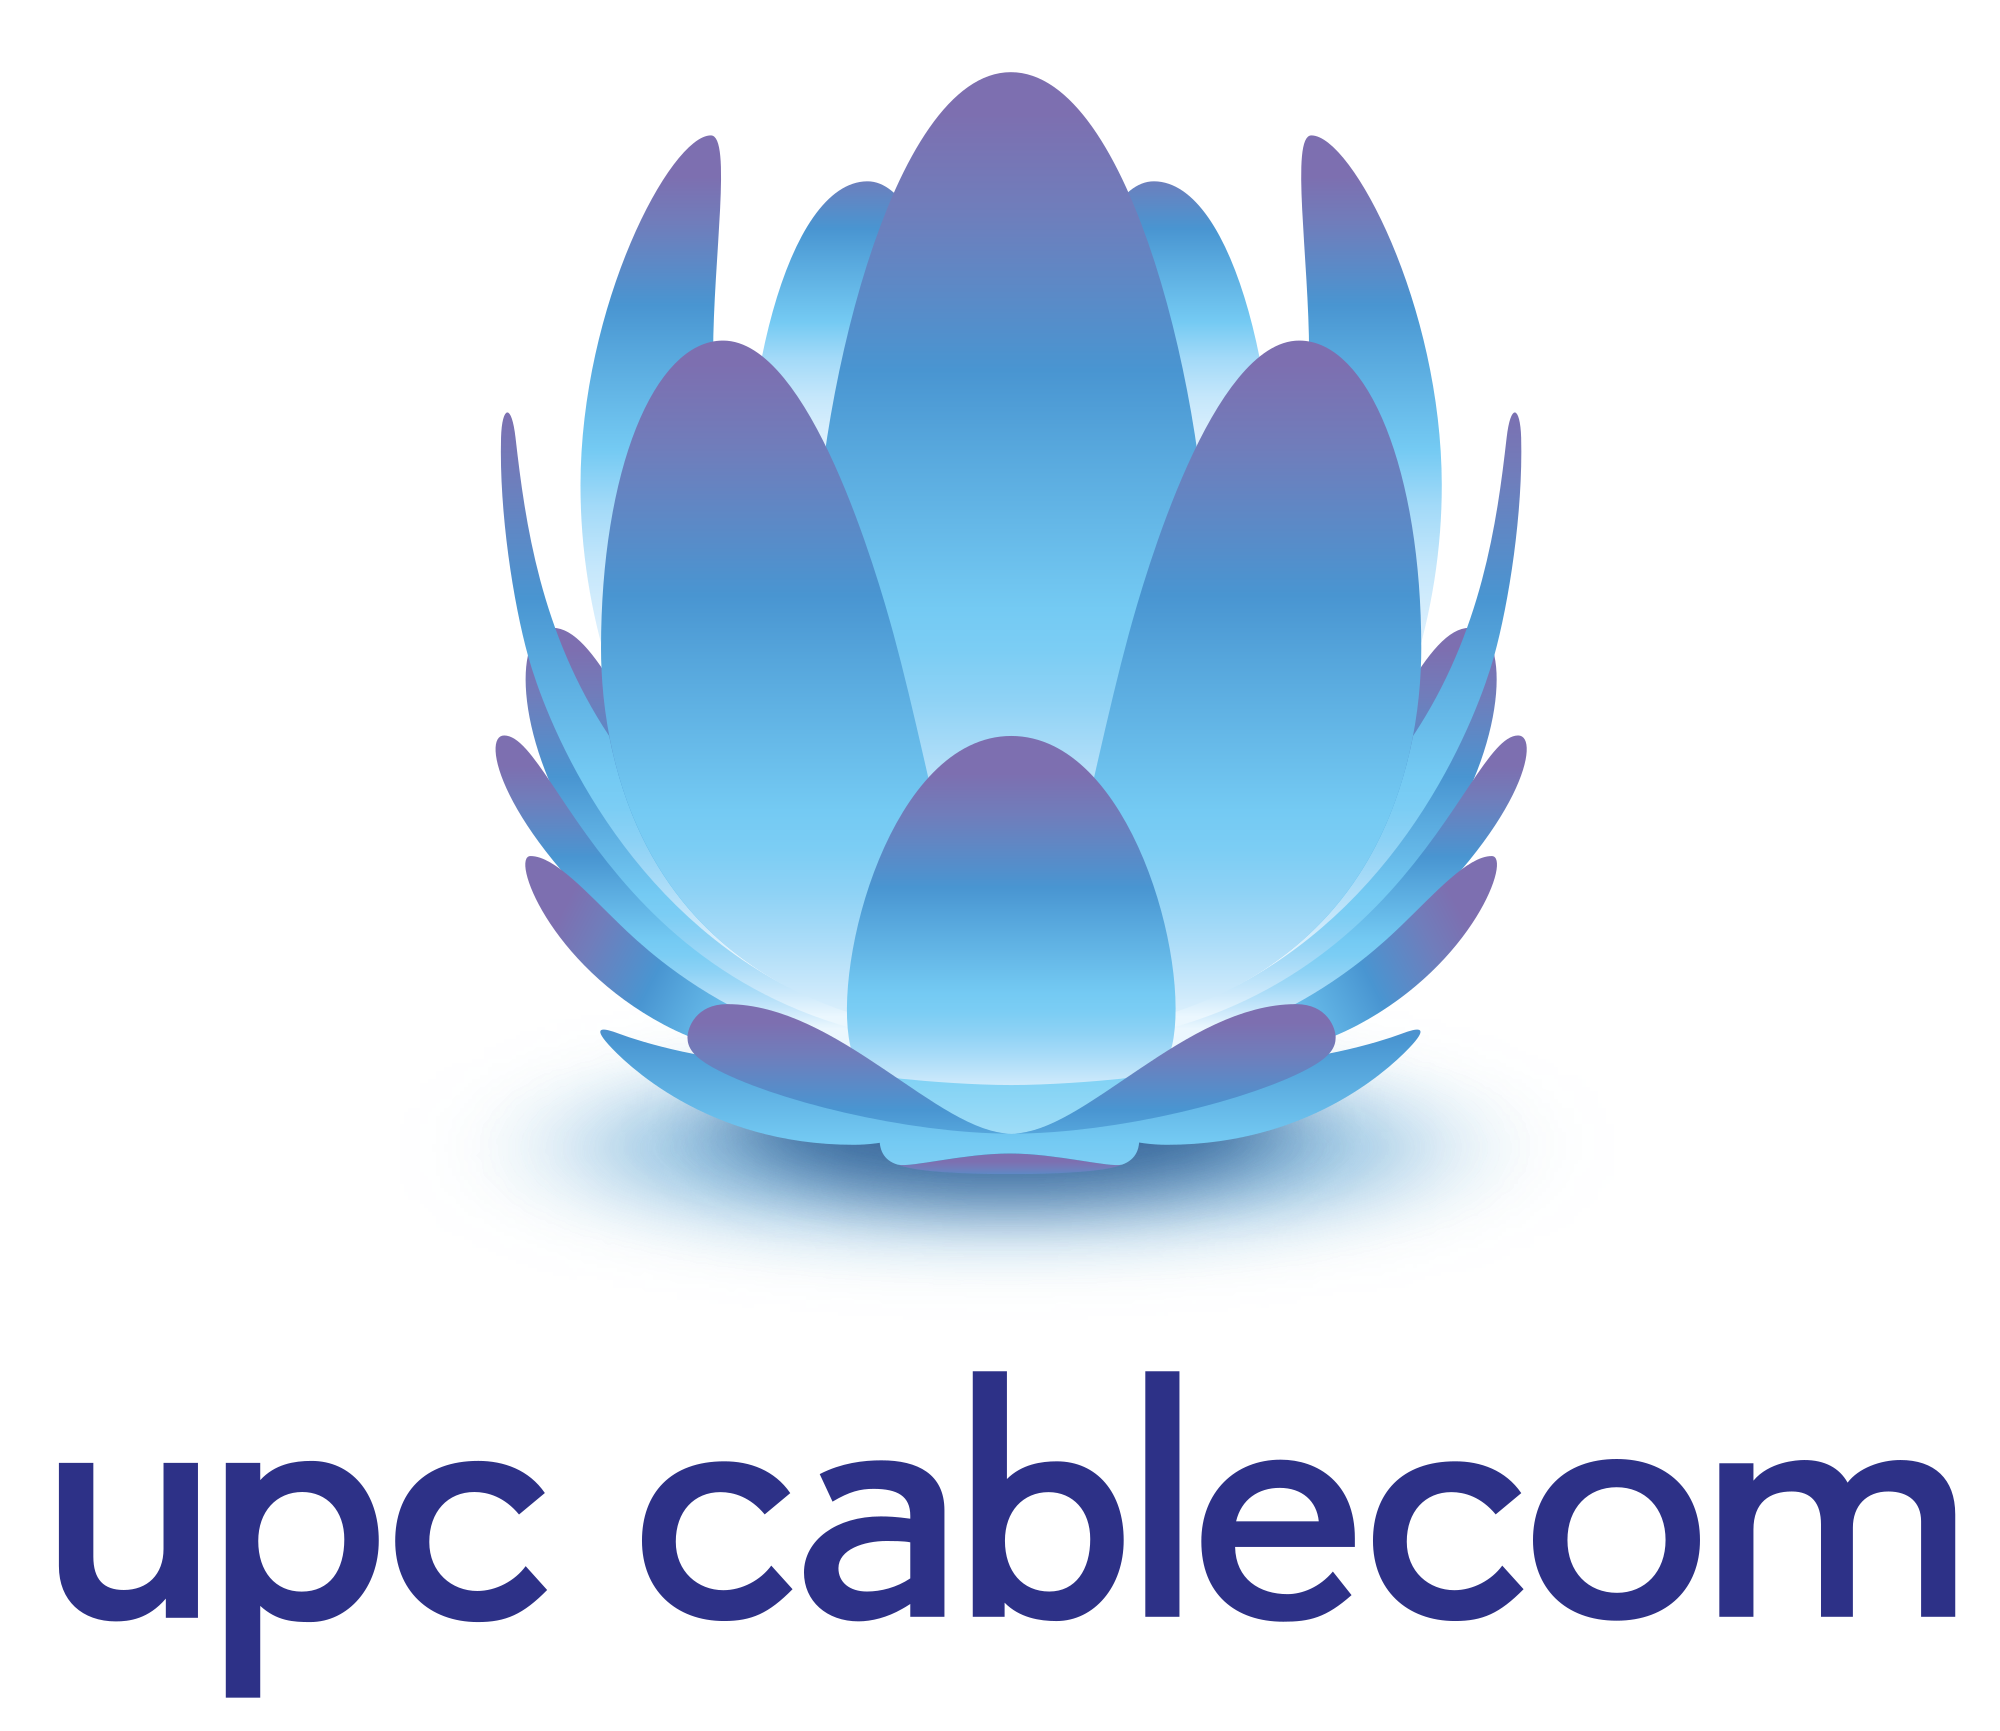 Upc Png (35+ images).